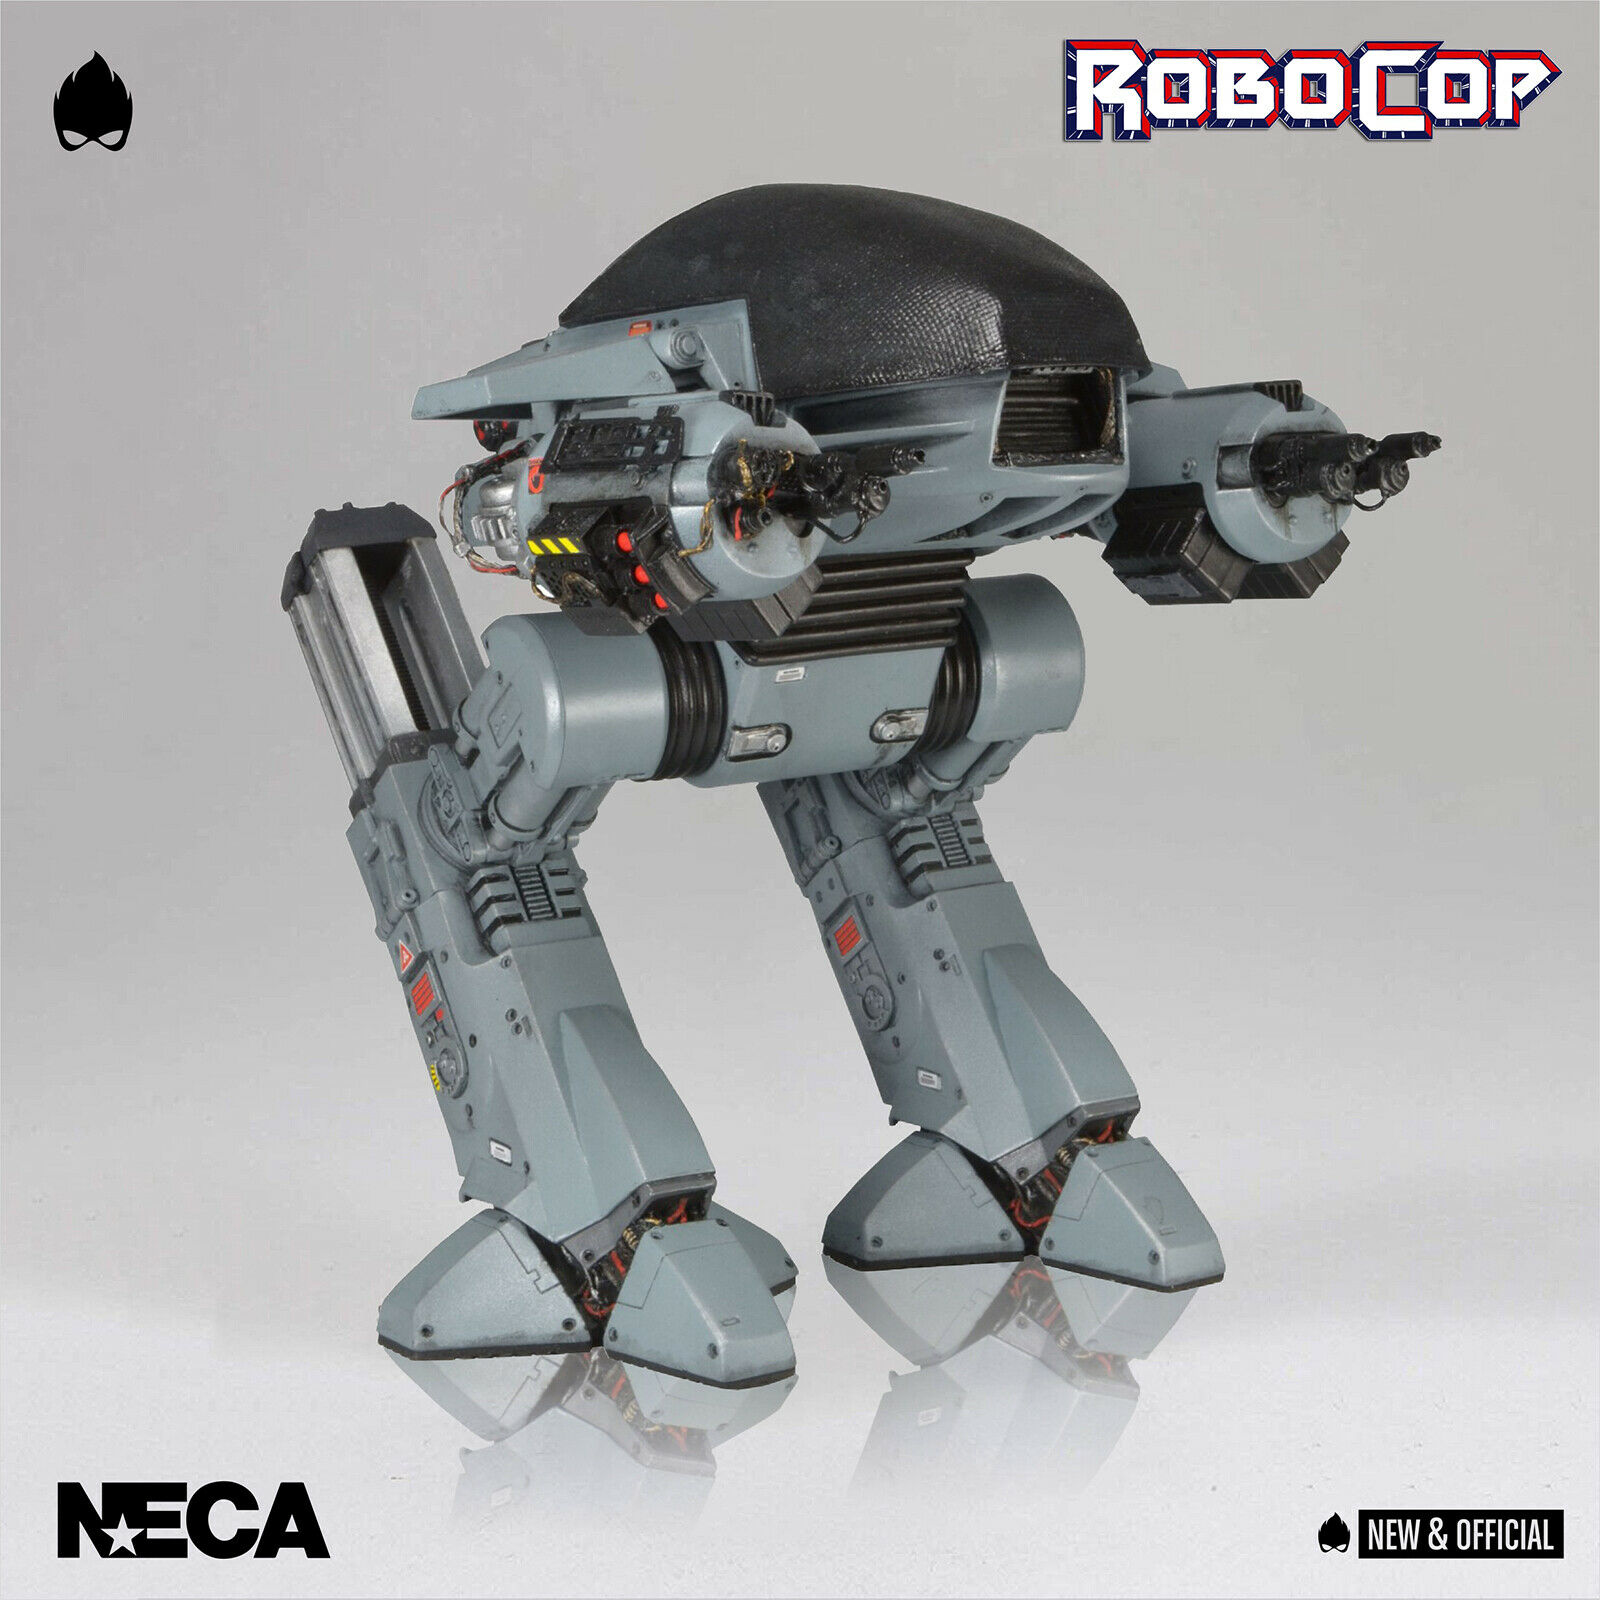 NECA - ROBOCOP ED-209 with Sound Action Figure  • NEW & OFFICIAL •